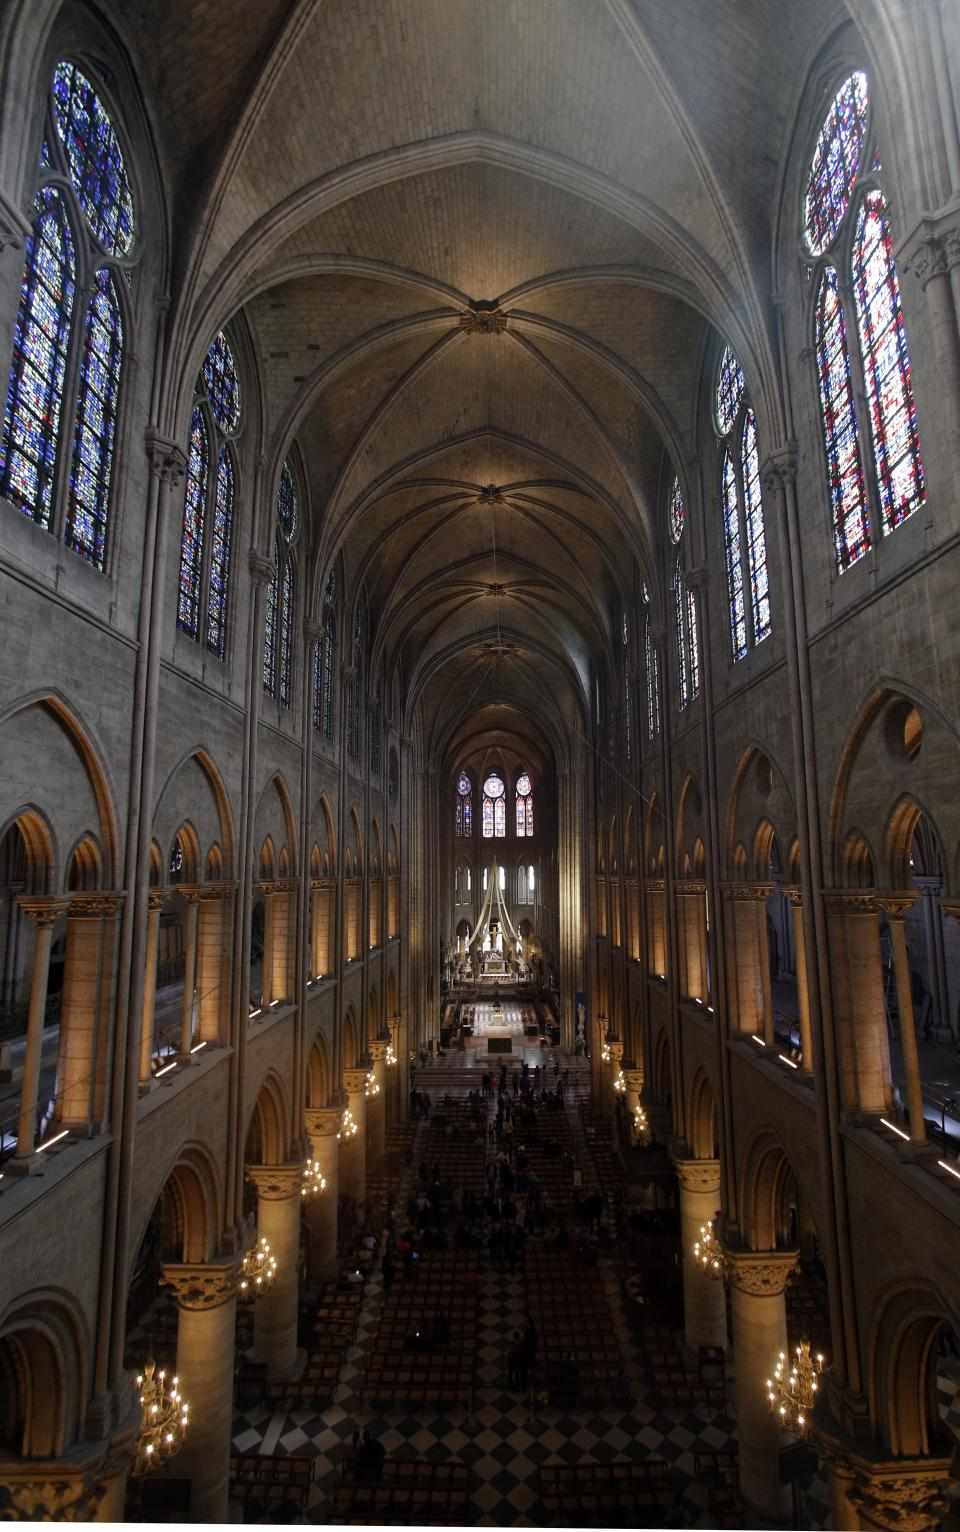 This Thursday May 2, 2013 photo shows the view from the organ loft at Notre Dame cathedral in Paris. The organ was refurbished for the cathedral's 850th anniversary this year. (AP Photo/Christophe Ena)